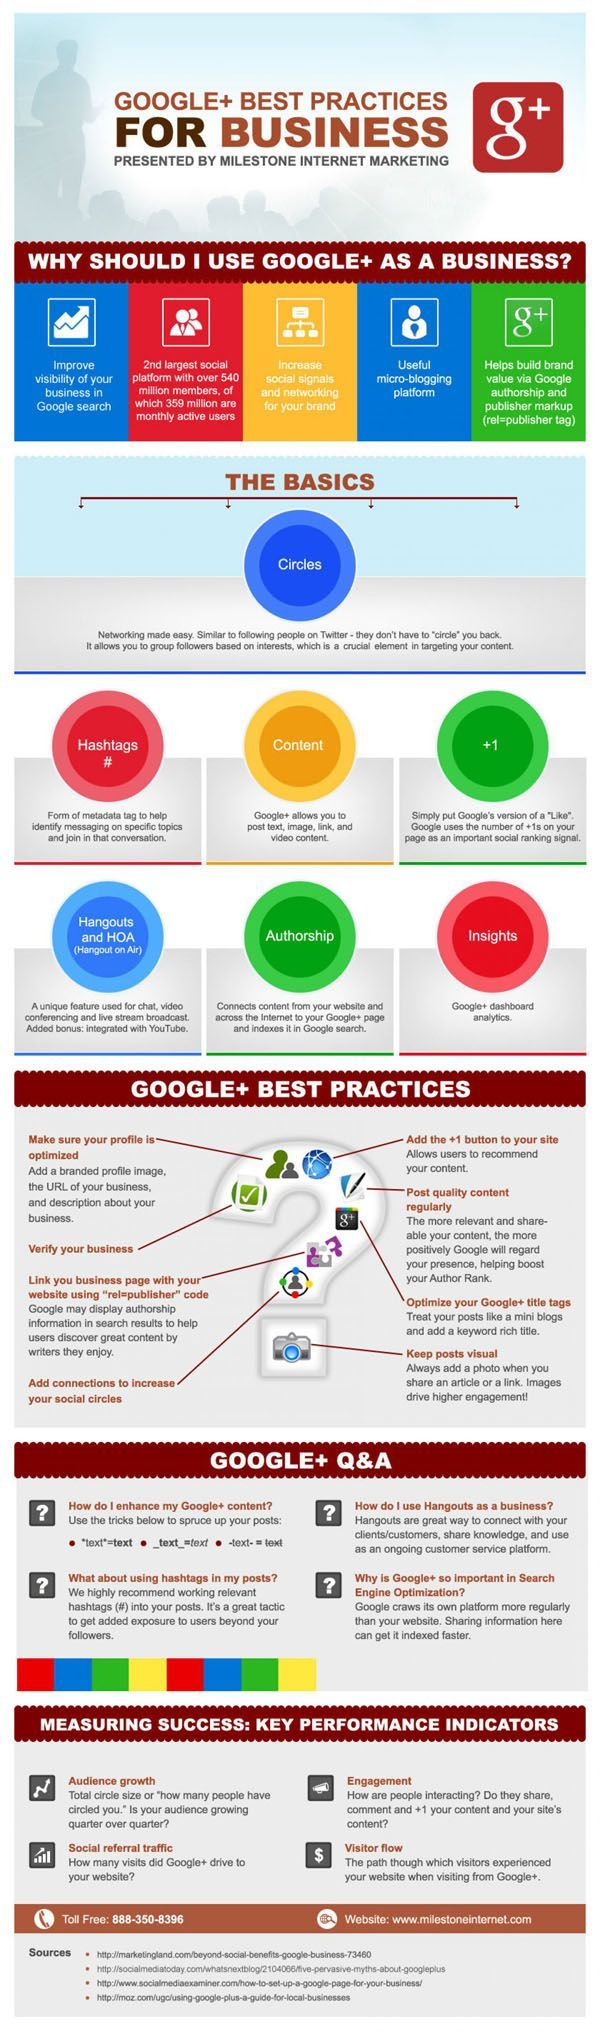 12 Ways to Use Google Plus to Market Your Business #socialmedia #infographic